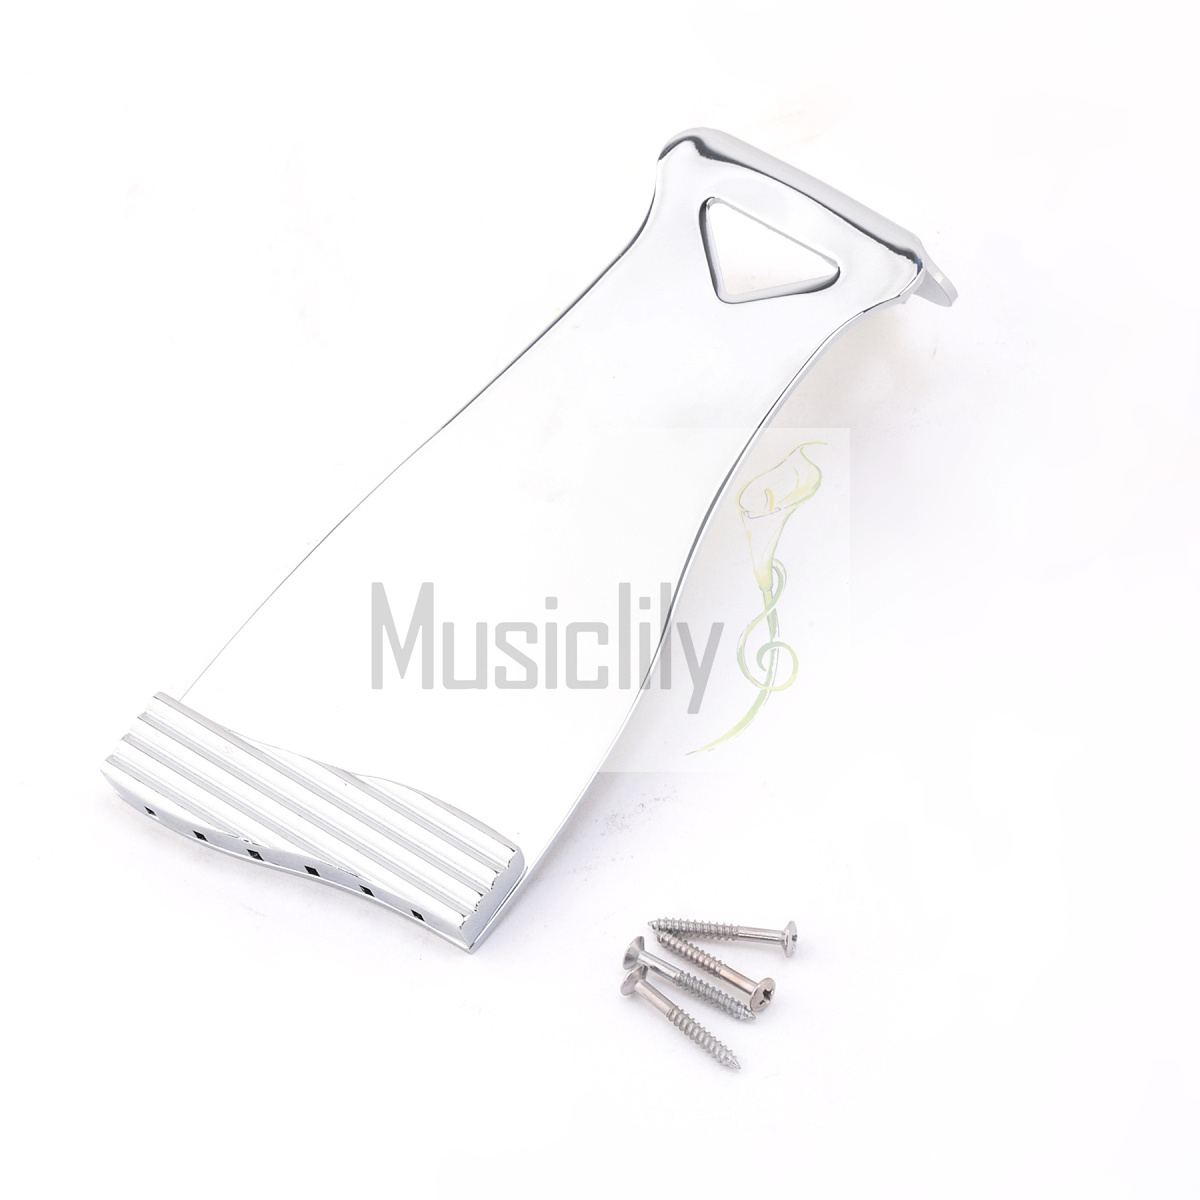 Musiclily Non-hinged Guitar Tailpiece, Chrome musiclily 3ply pvc outline pickguard for fenderstrat st guitar custom